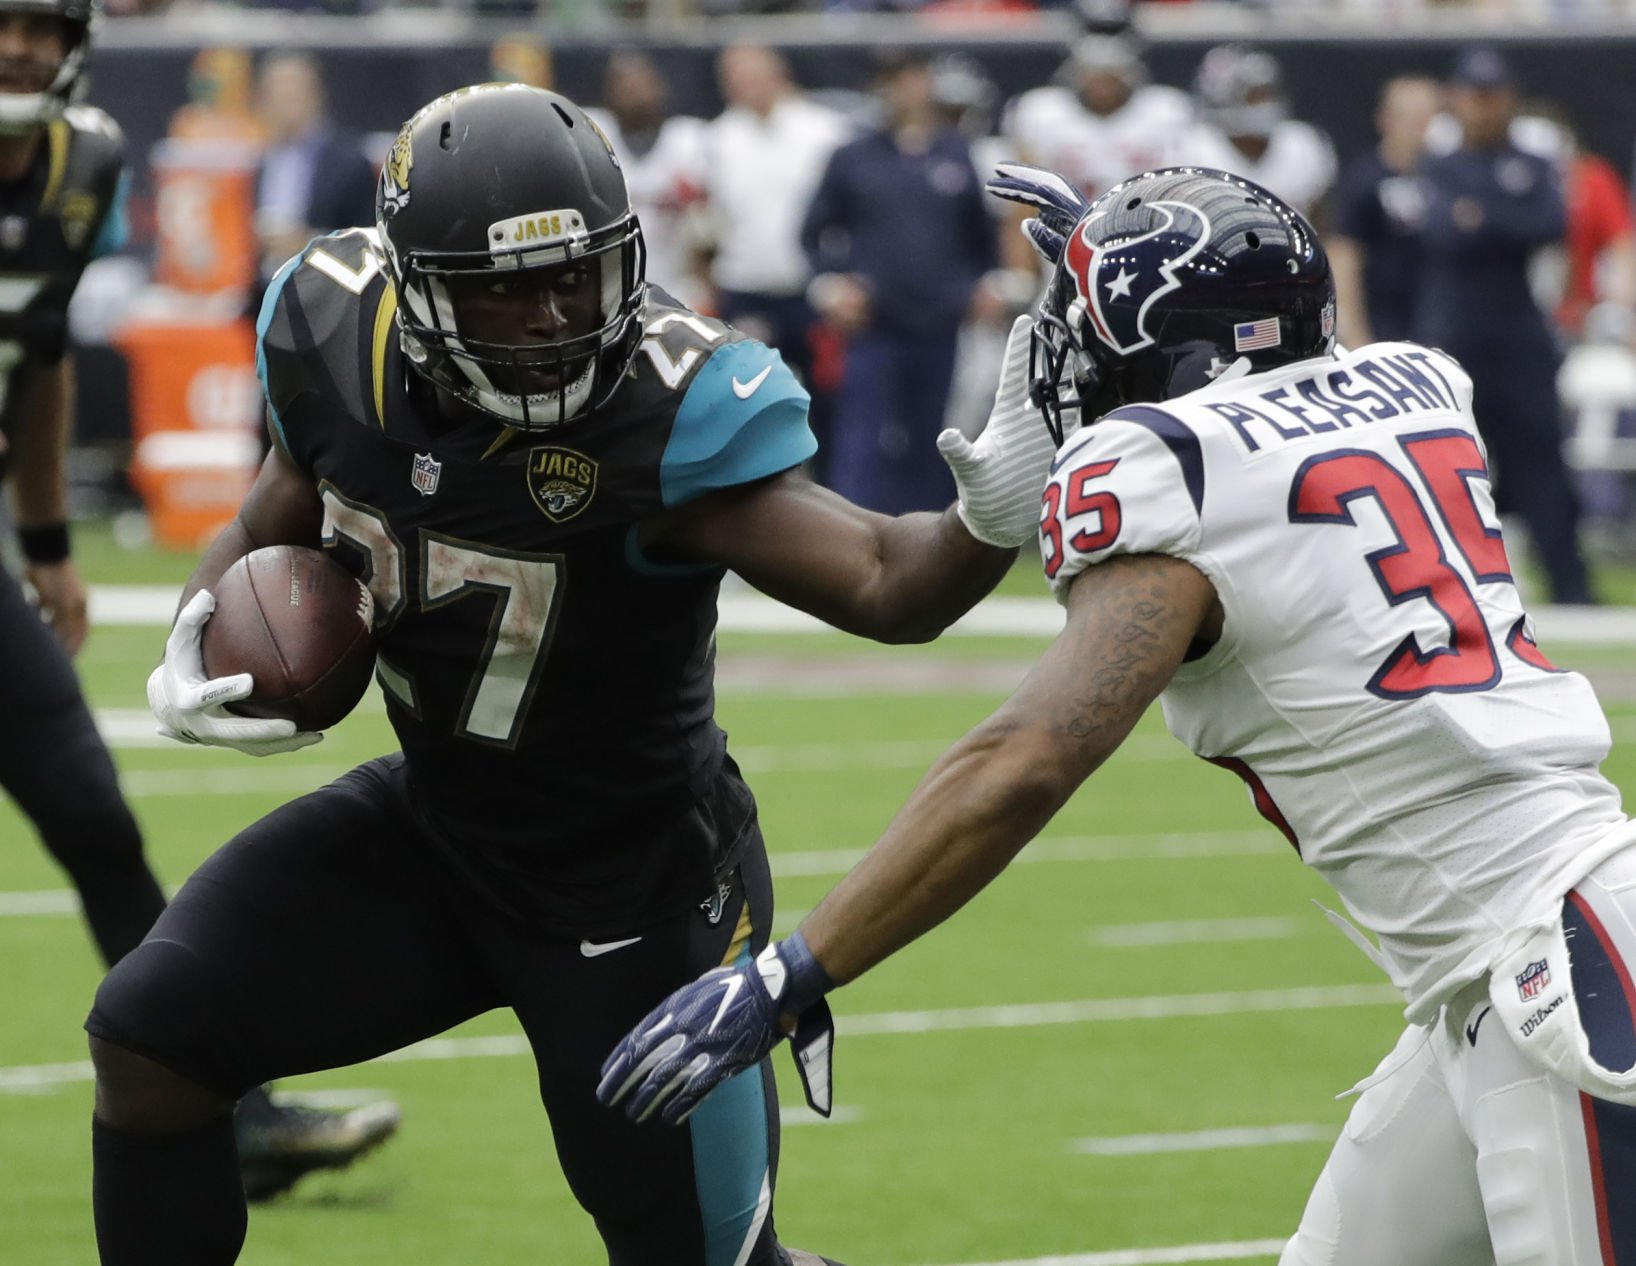 Five takeaways from Houston's Week 1 loss to Jacksonville